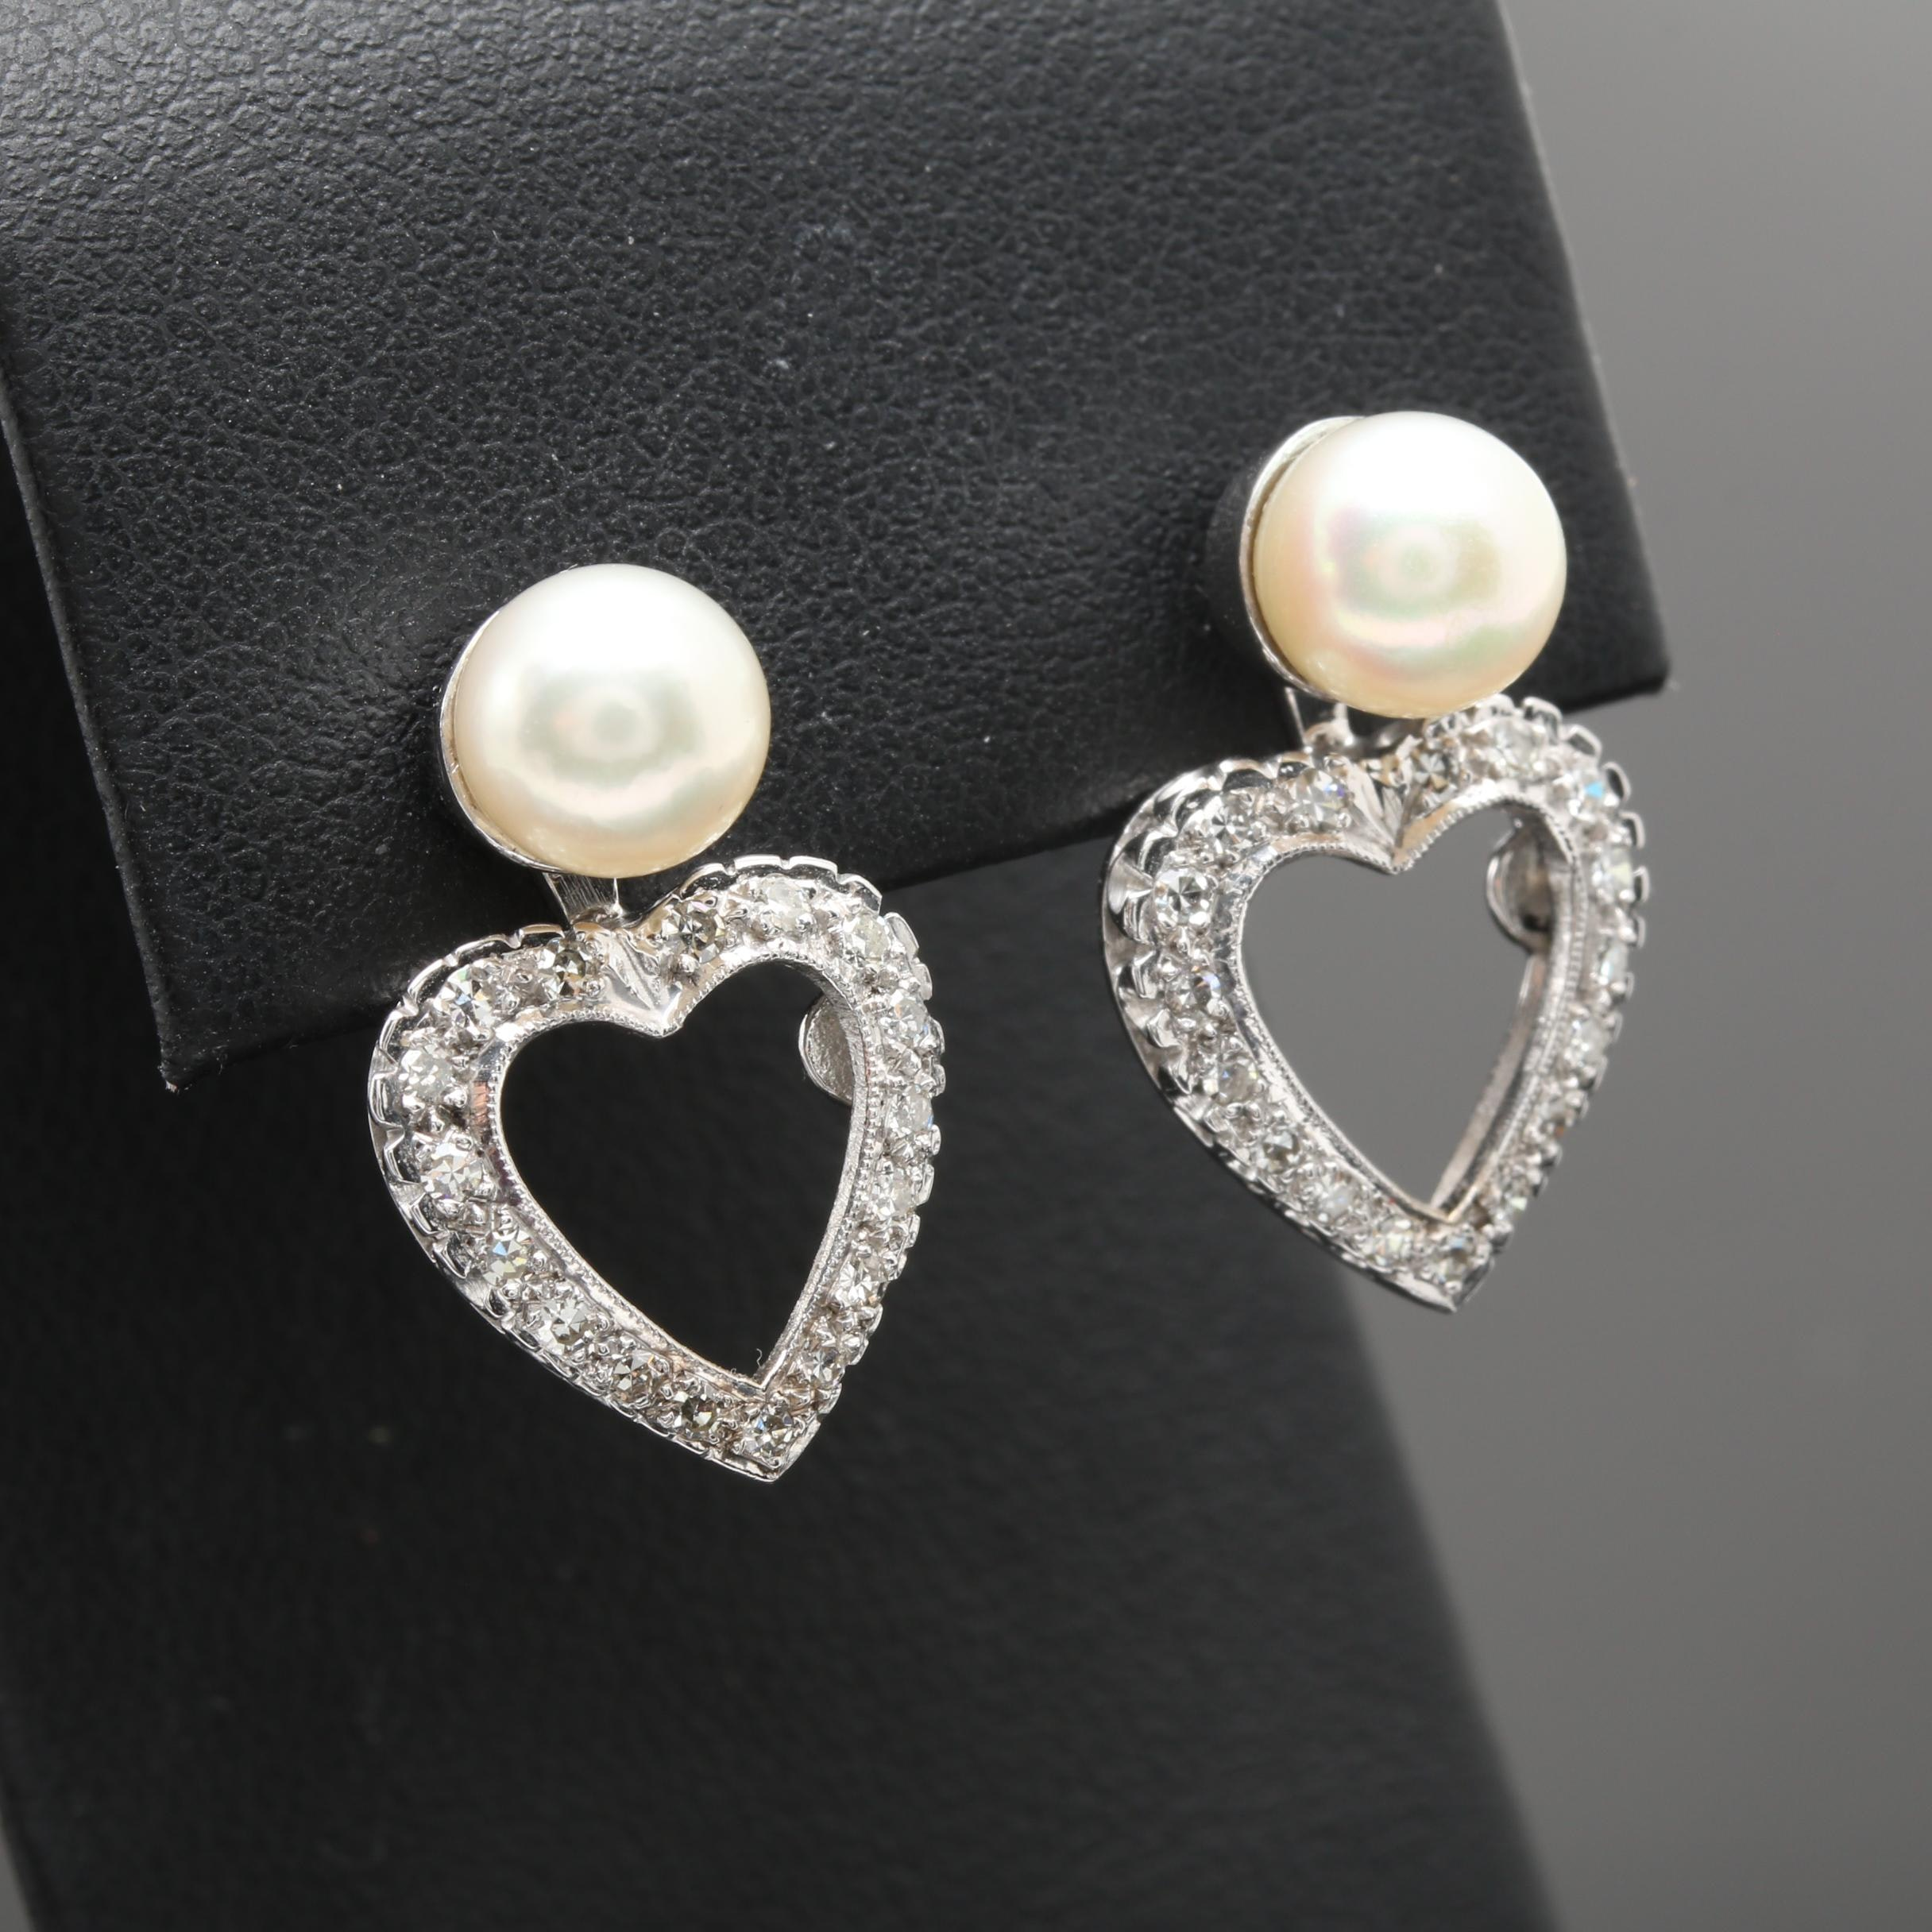 14K White Gold Cultured Pearl and Diamond Heart Dangle Earrings